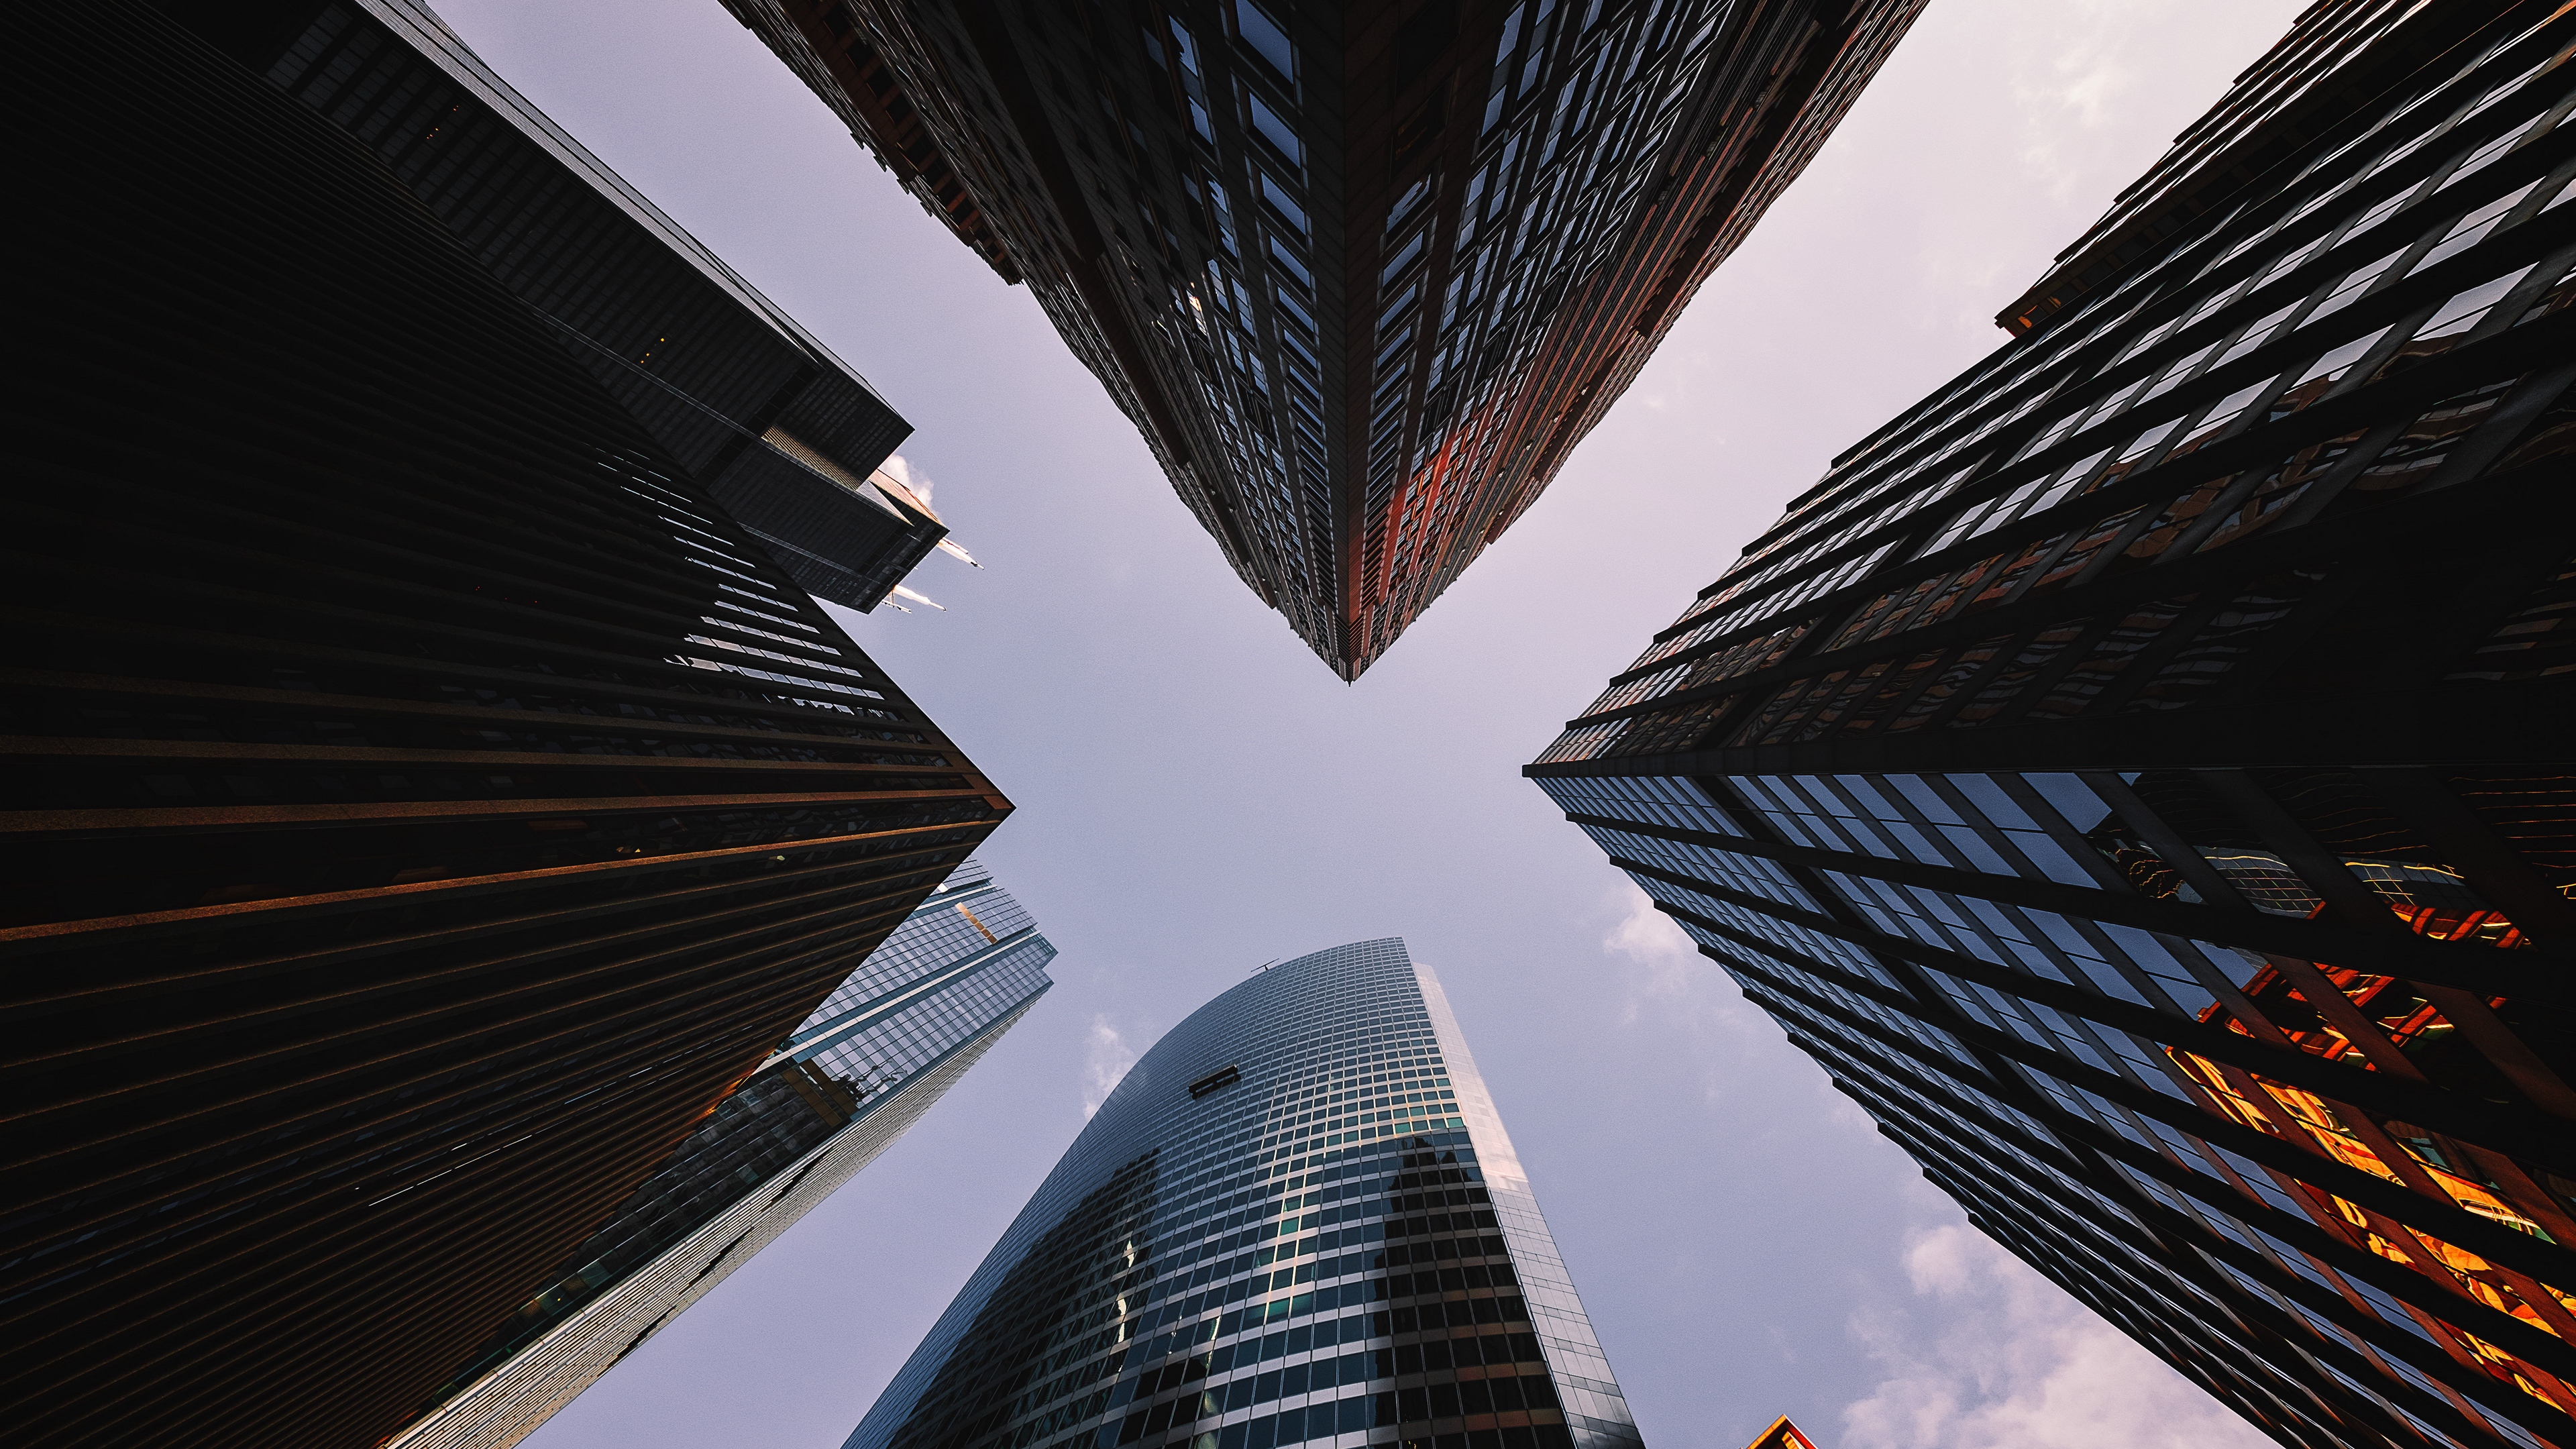 skyscrapers view from below architecture 4k 1538066592 - skyscrapers, view from below, architecture 4k - view from below, Skyscrapers, Architecture